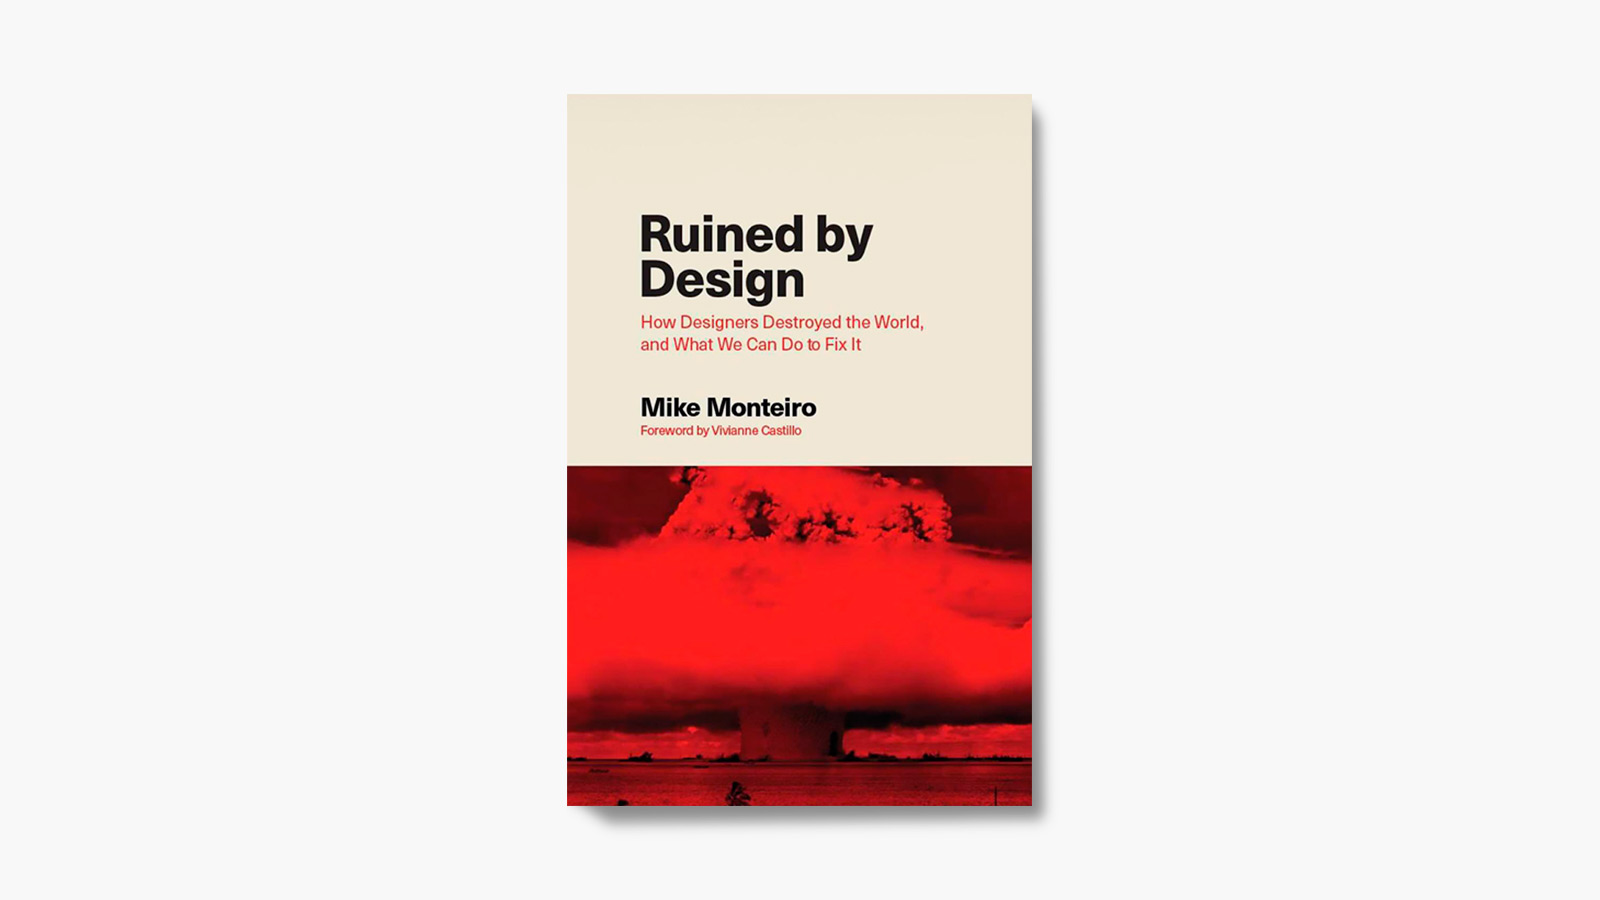 Ruined by Design